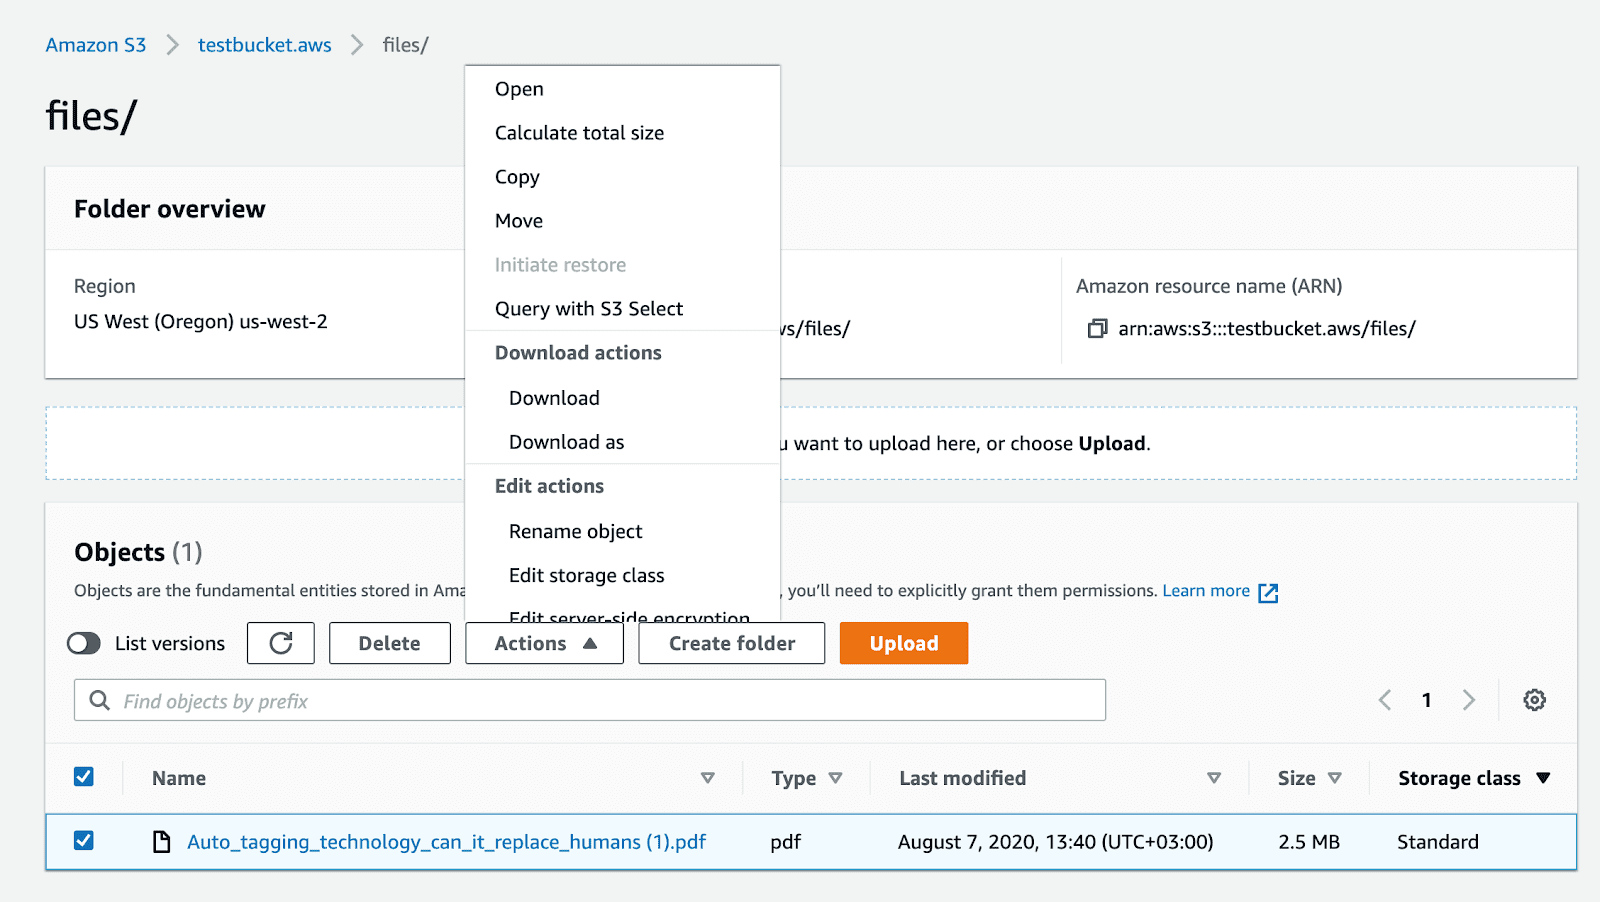 Downloading objects from Amazon S3